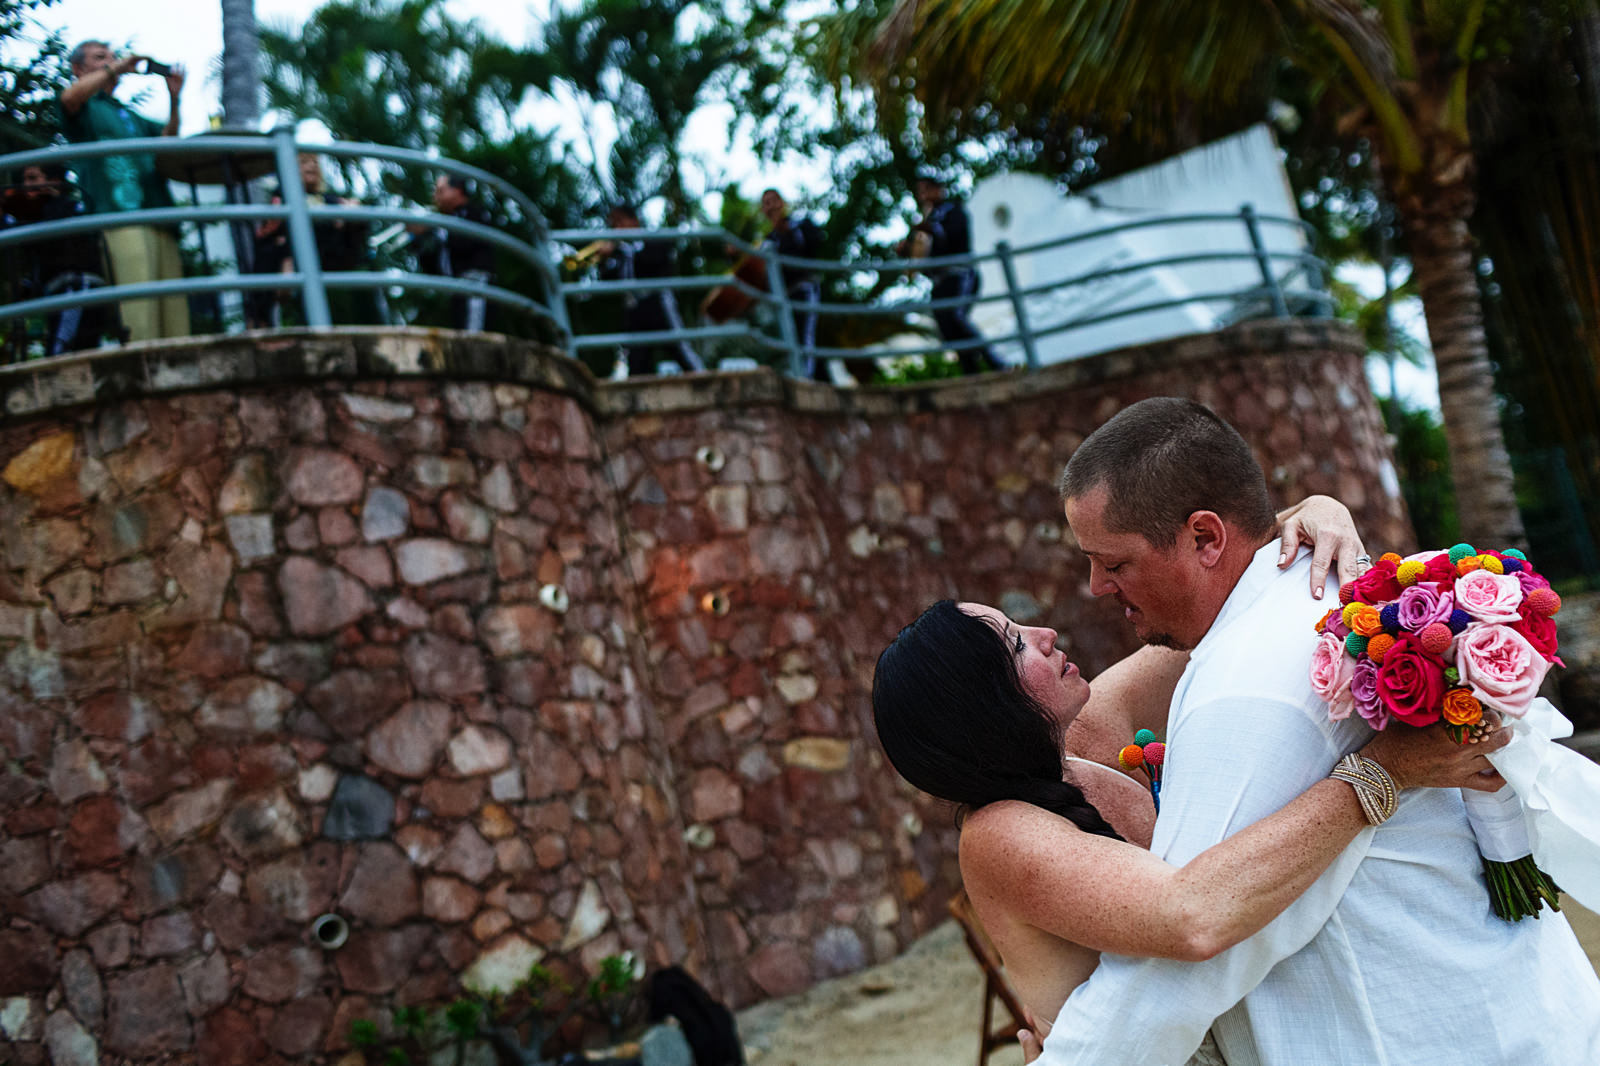 Bride and groom look at each other after their destination wedding ceremony with a mariachi band in the background